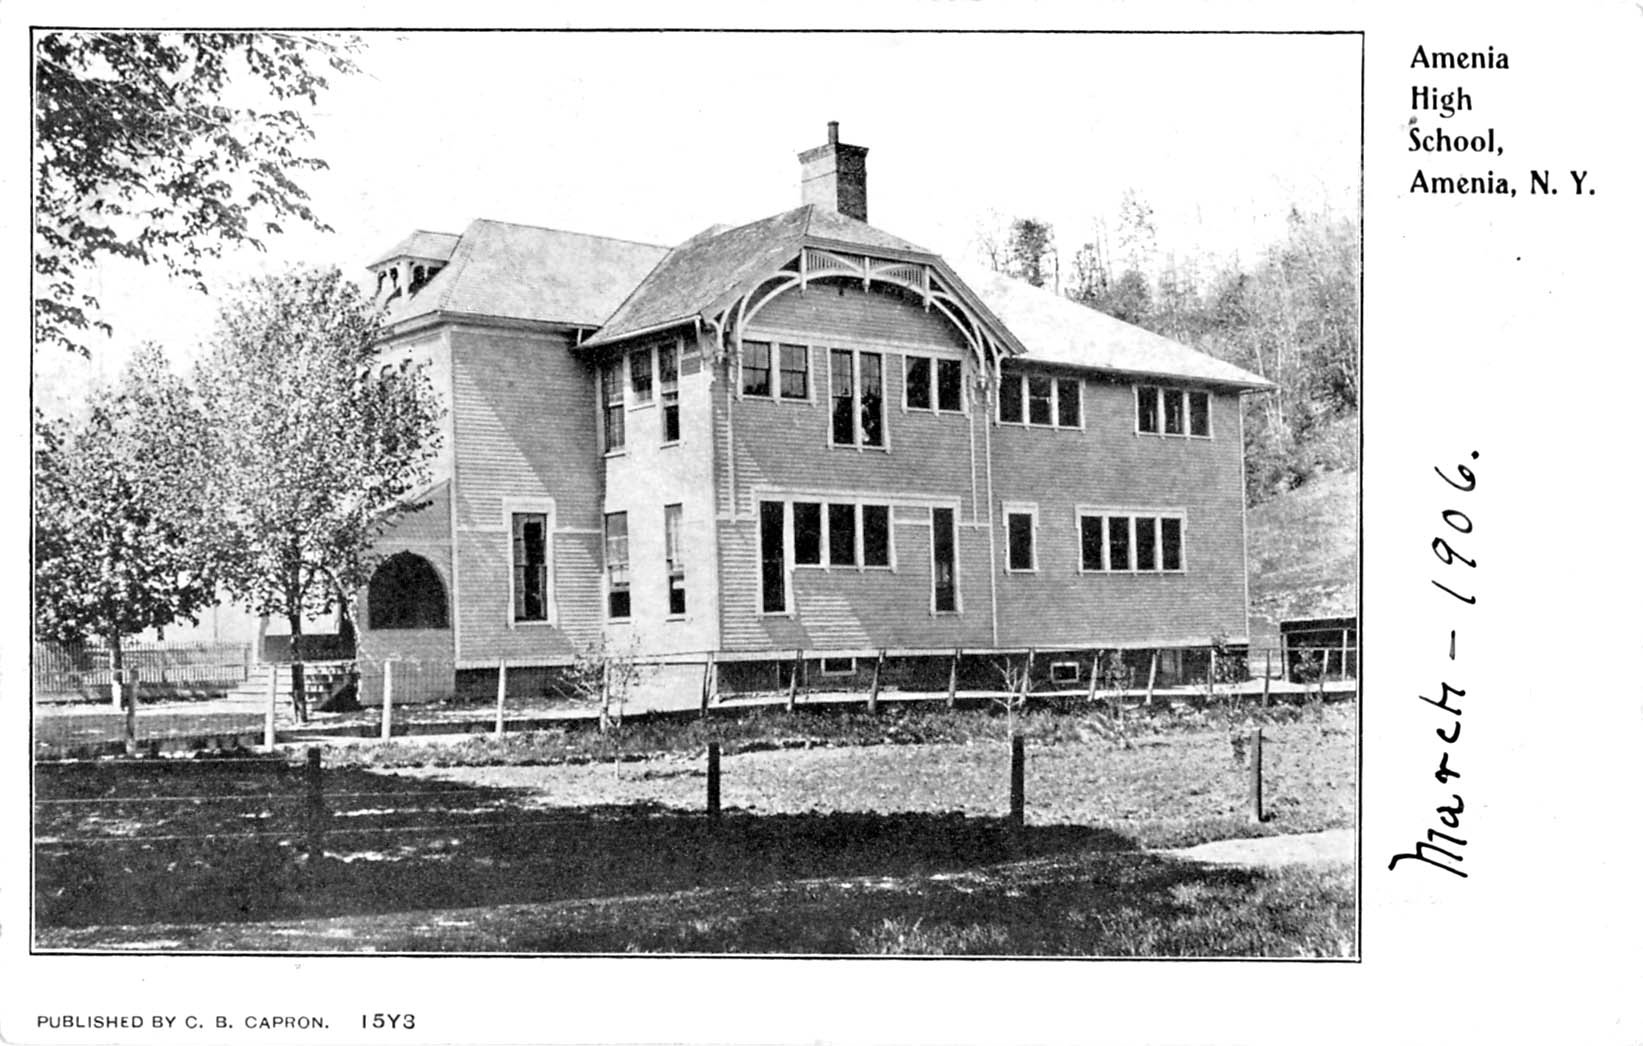 Old Amenia High School